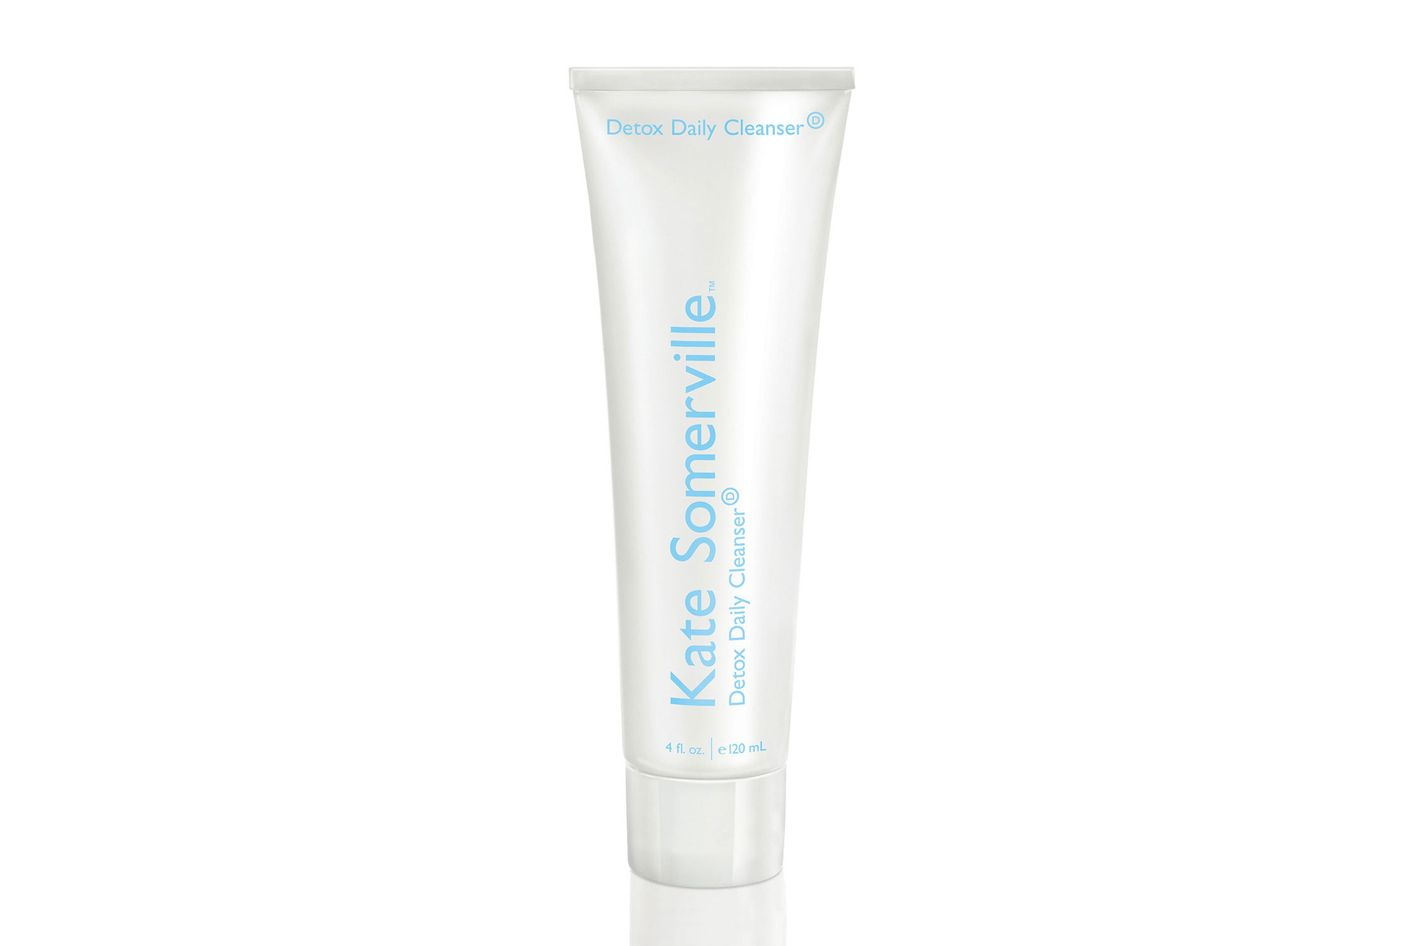 Kate Somerville Luxe-Size Detox Daily Cleanser